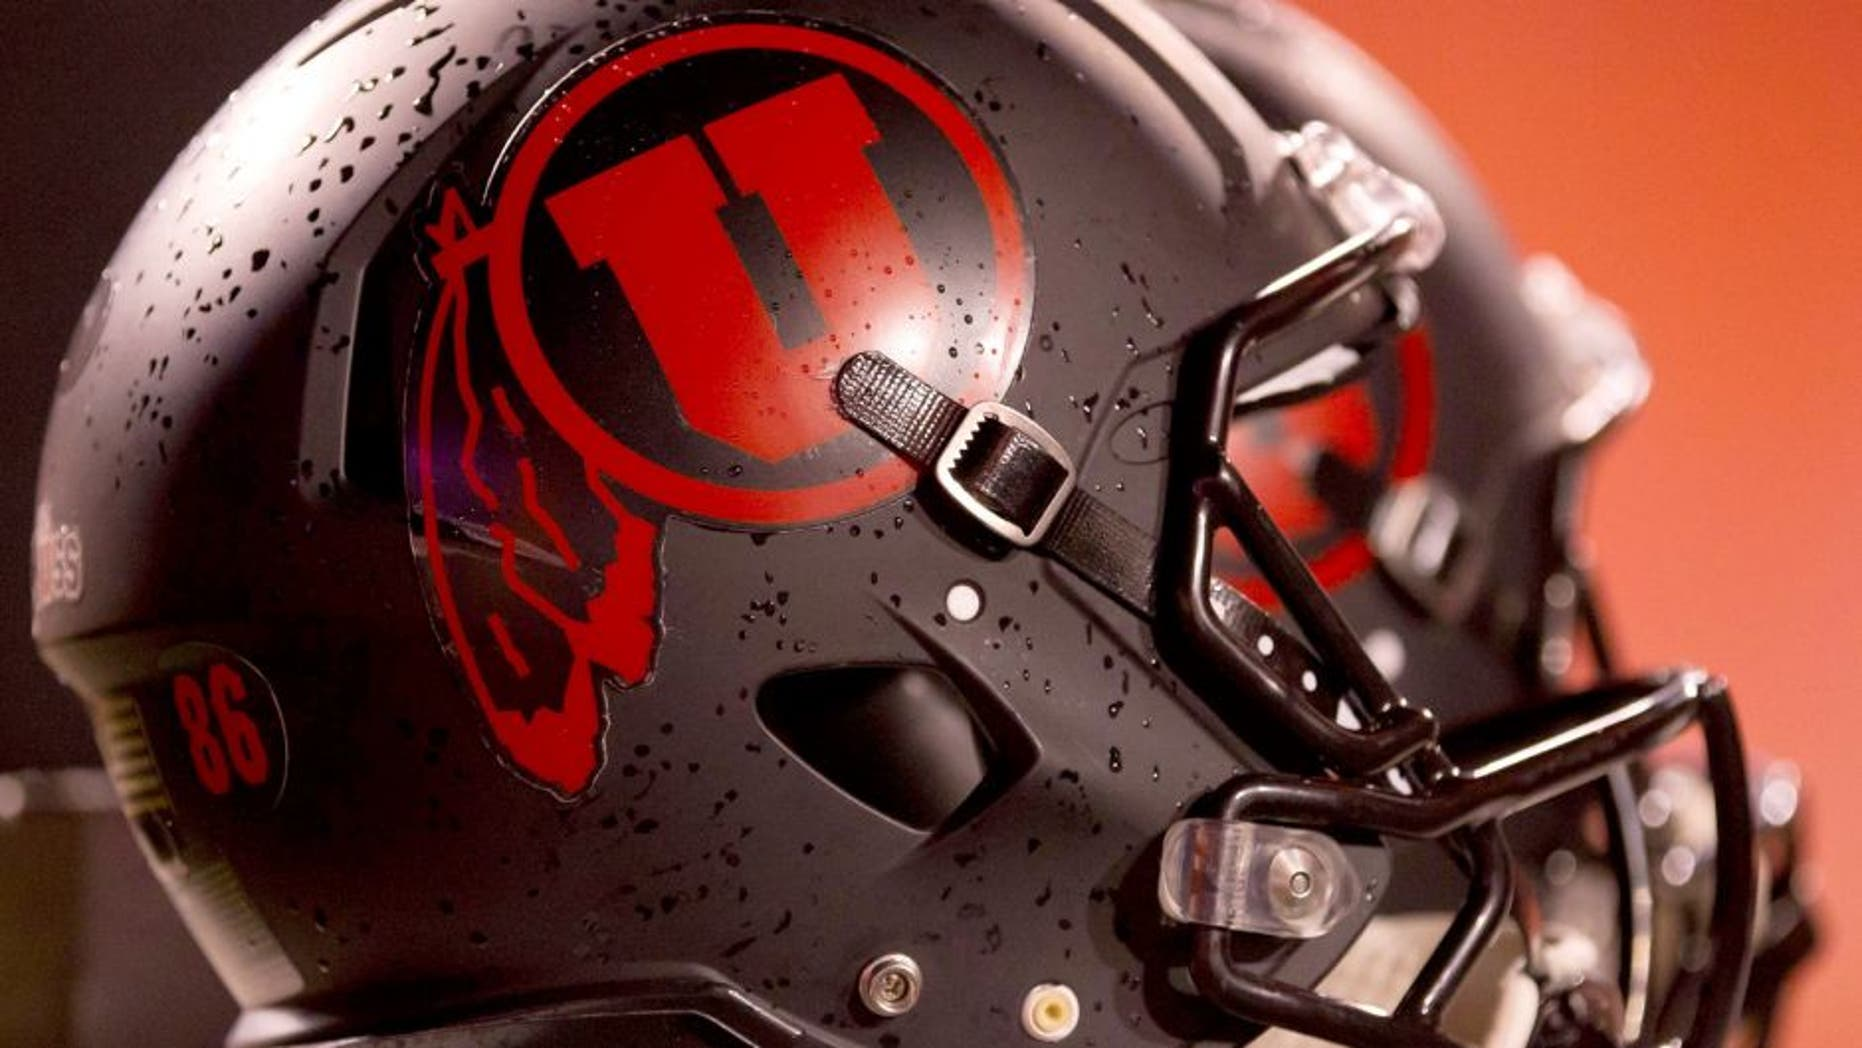 November 17, 2012; Salt Lake City, UT, USA; A Utah Utes helmet photographed during a game against the Arizona Wildcats at Rice-Eccles Stadium. The Wildcats defeated the Utes 34-24. Mandatory Credit: Russ Isabella-USA TODAY Sports